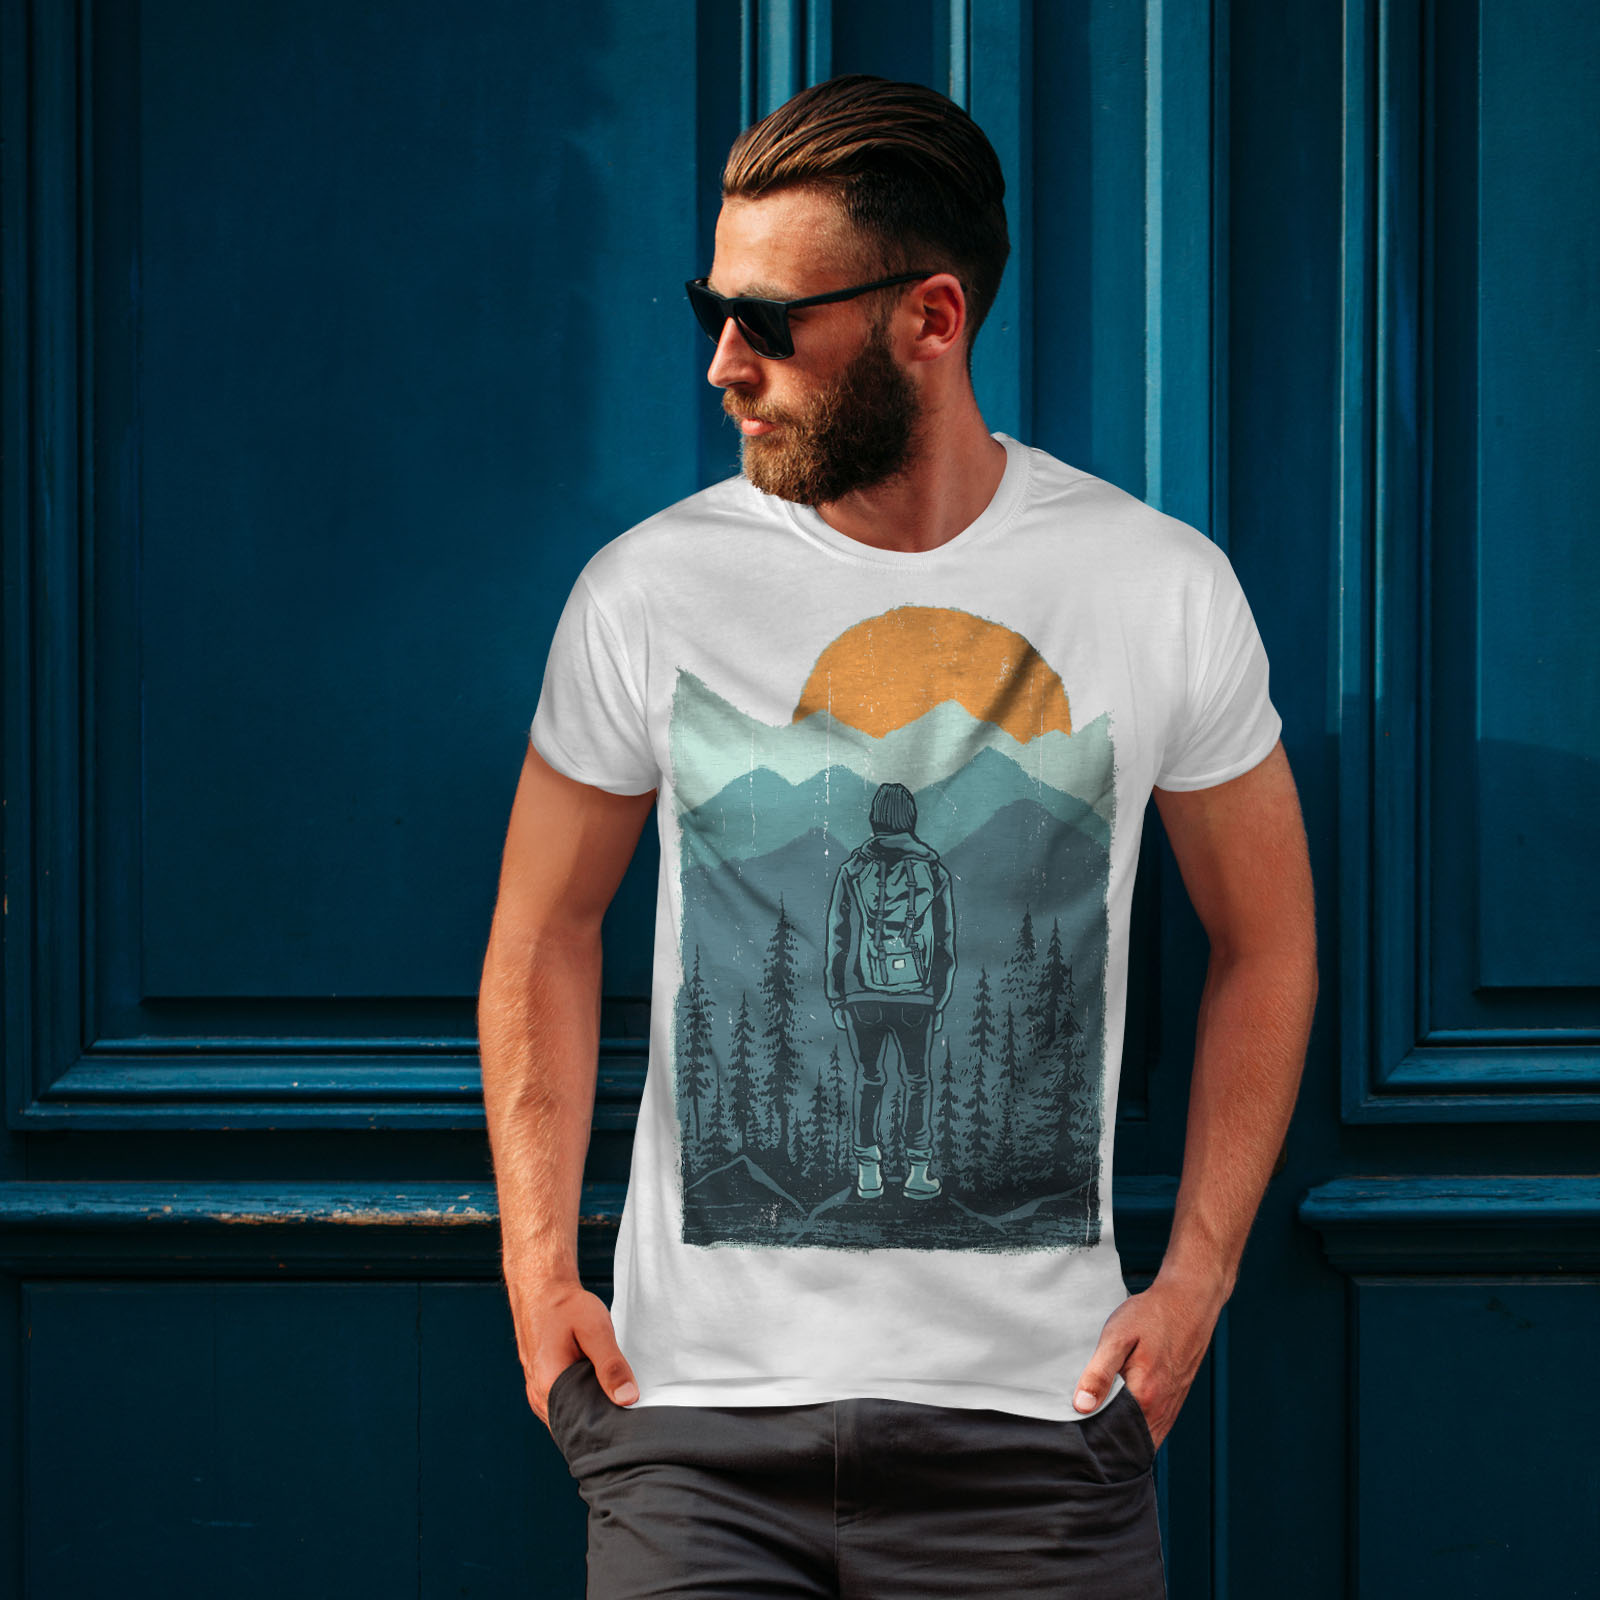 Wellcoda-SUNSET-Wilderness-CAMP-Da-Uomo-T-shirt-Wild-design-grafico-stampato-T-shirt miniatura 10